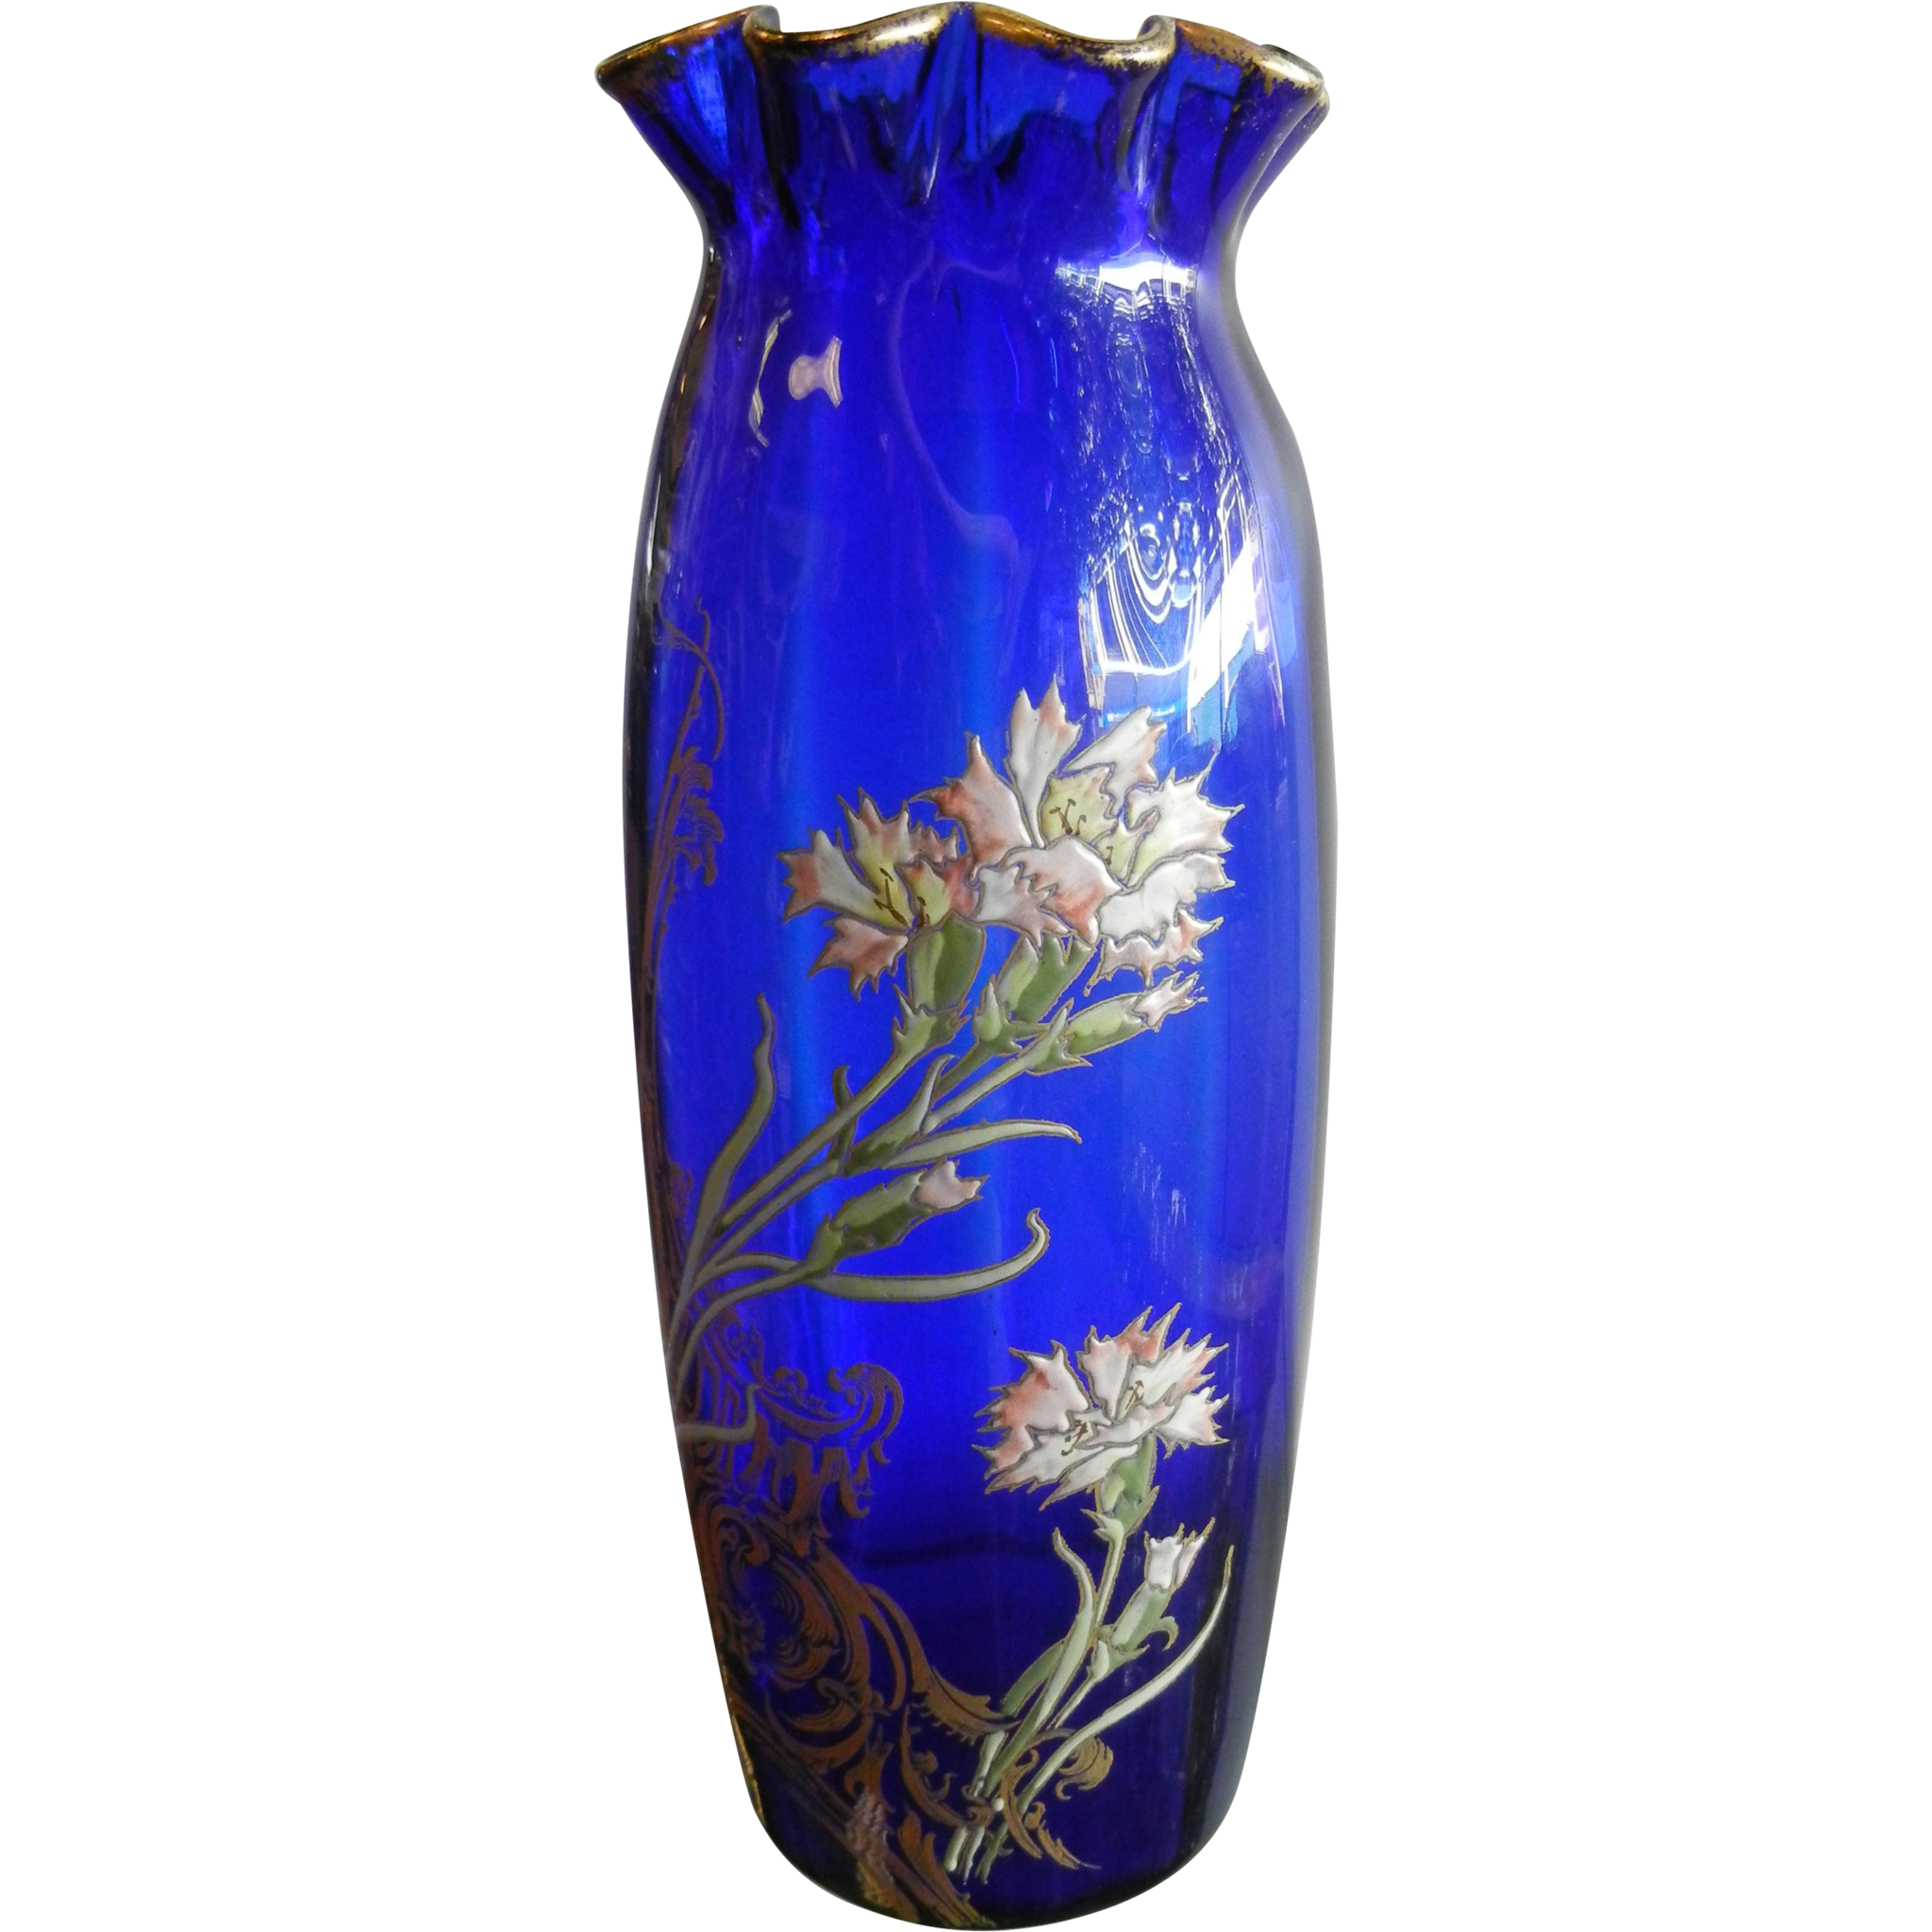 Antique Large Gilded Cobalt Blue Glass Vase w/ Hand Painted Enamel Flowers